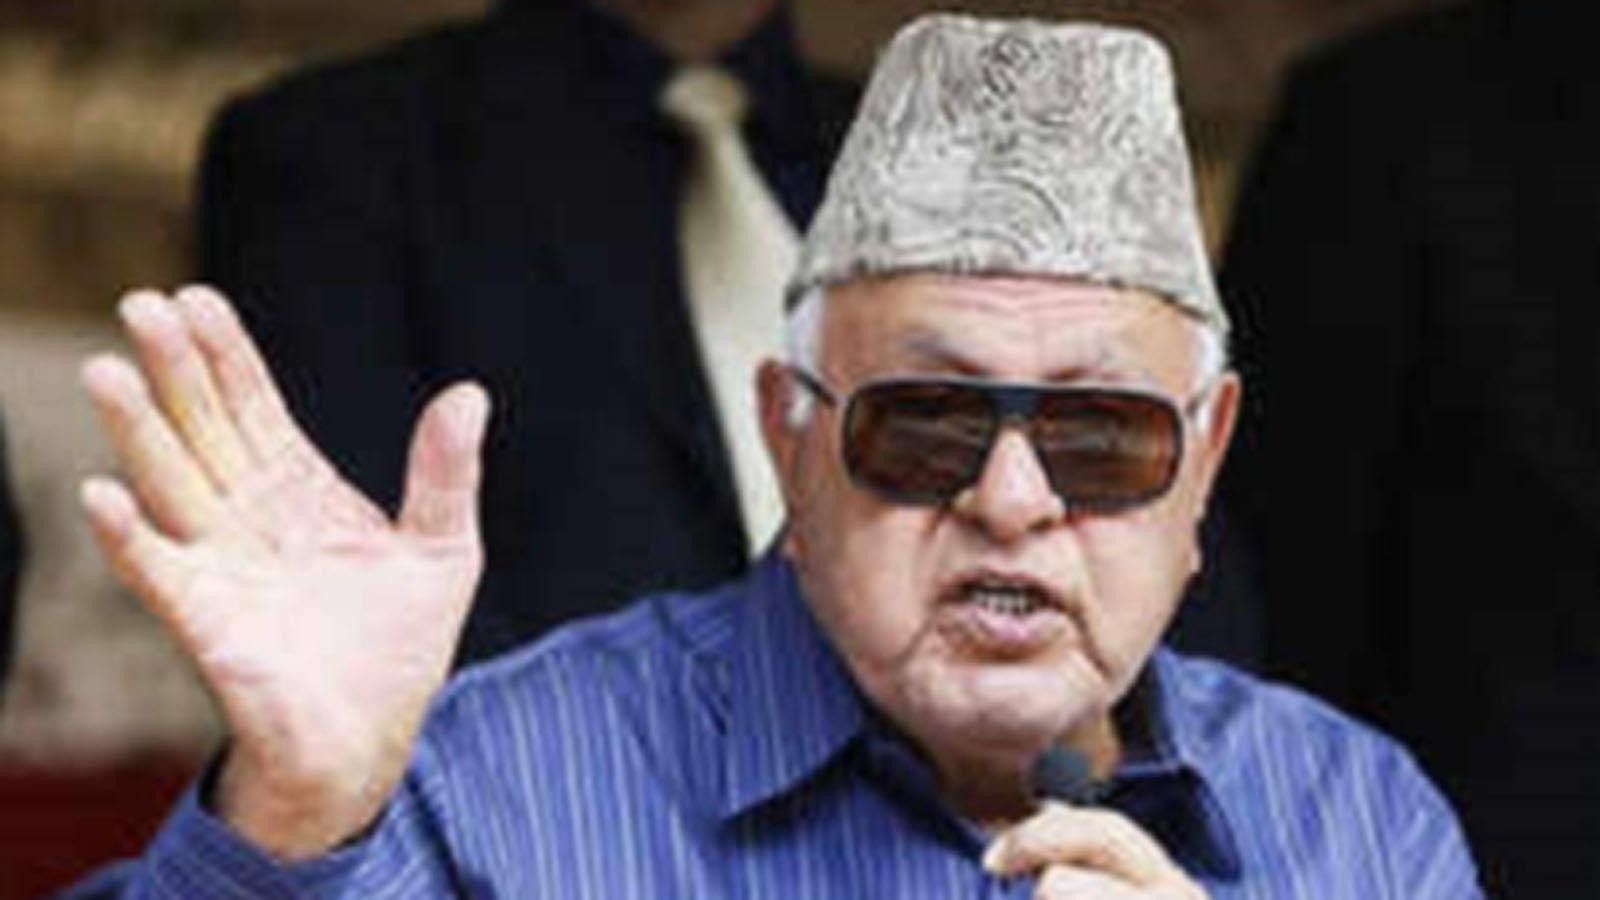 bjp-hits-out-at-farooq-abdullah-wants-him-to-quit-as-mp-over-chinese-rule-remark